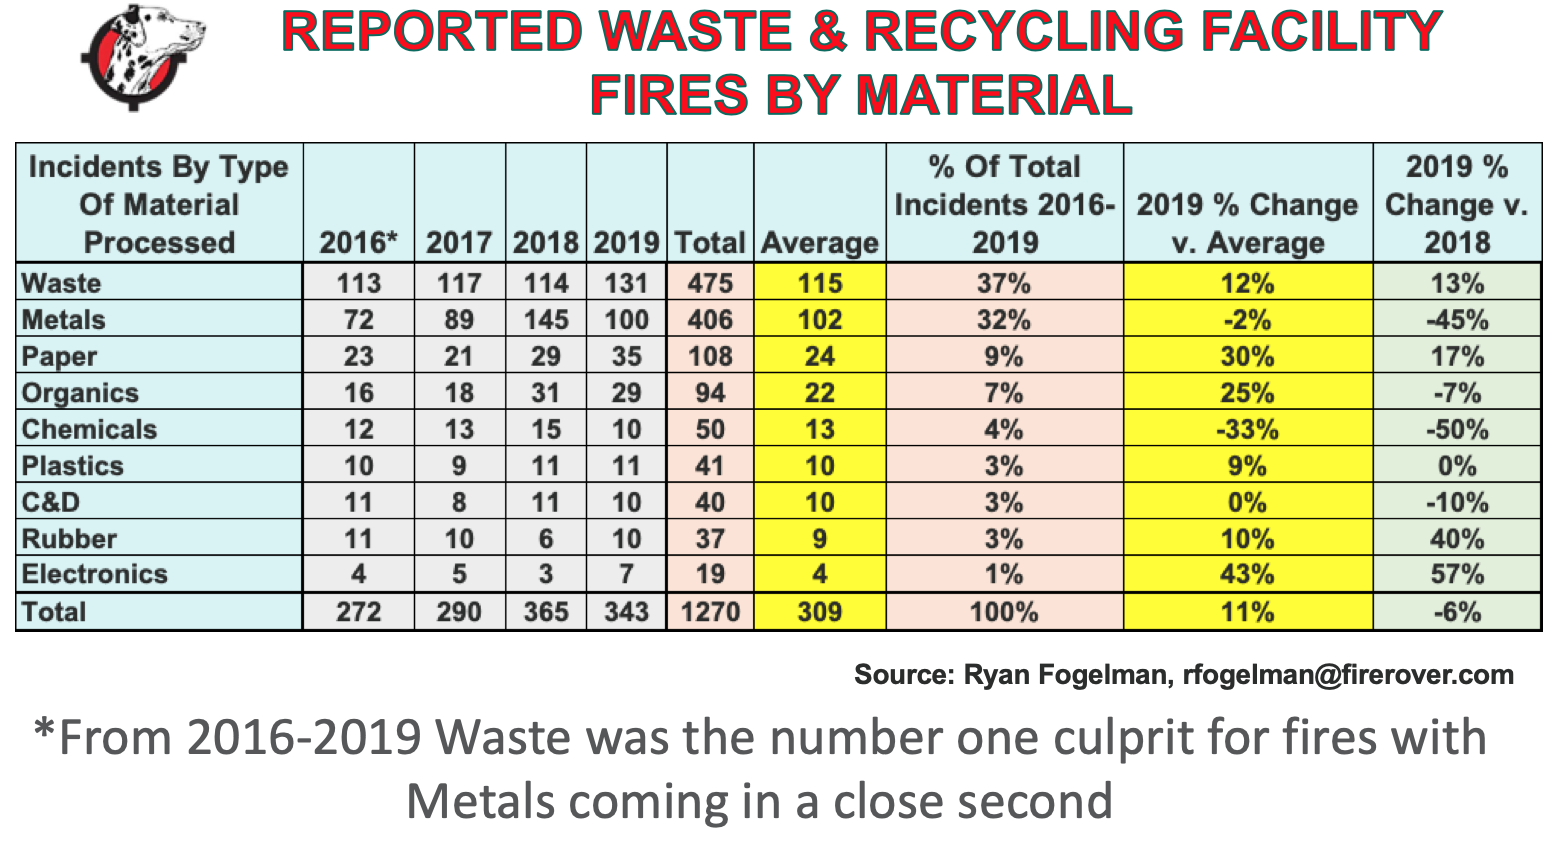 December 2019 Fire Report: Waste Fires Up 13%